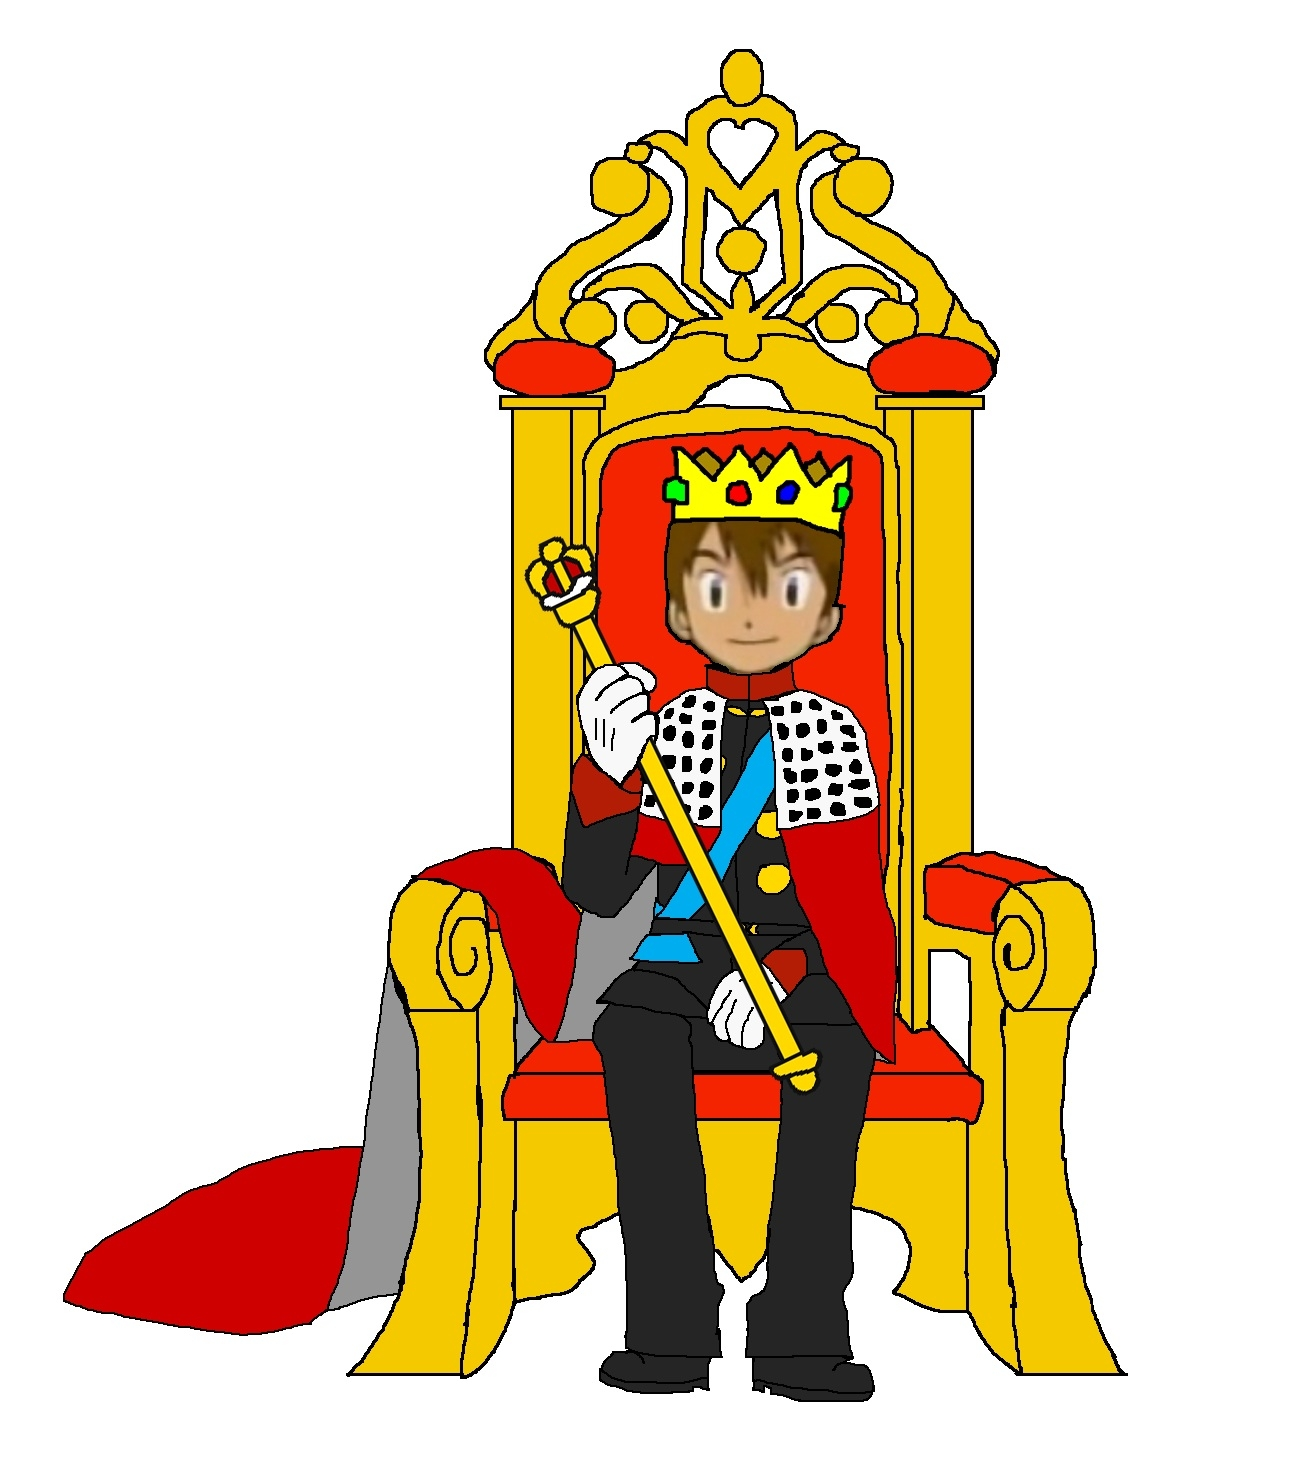 King On Throne.